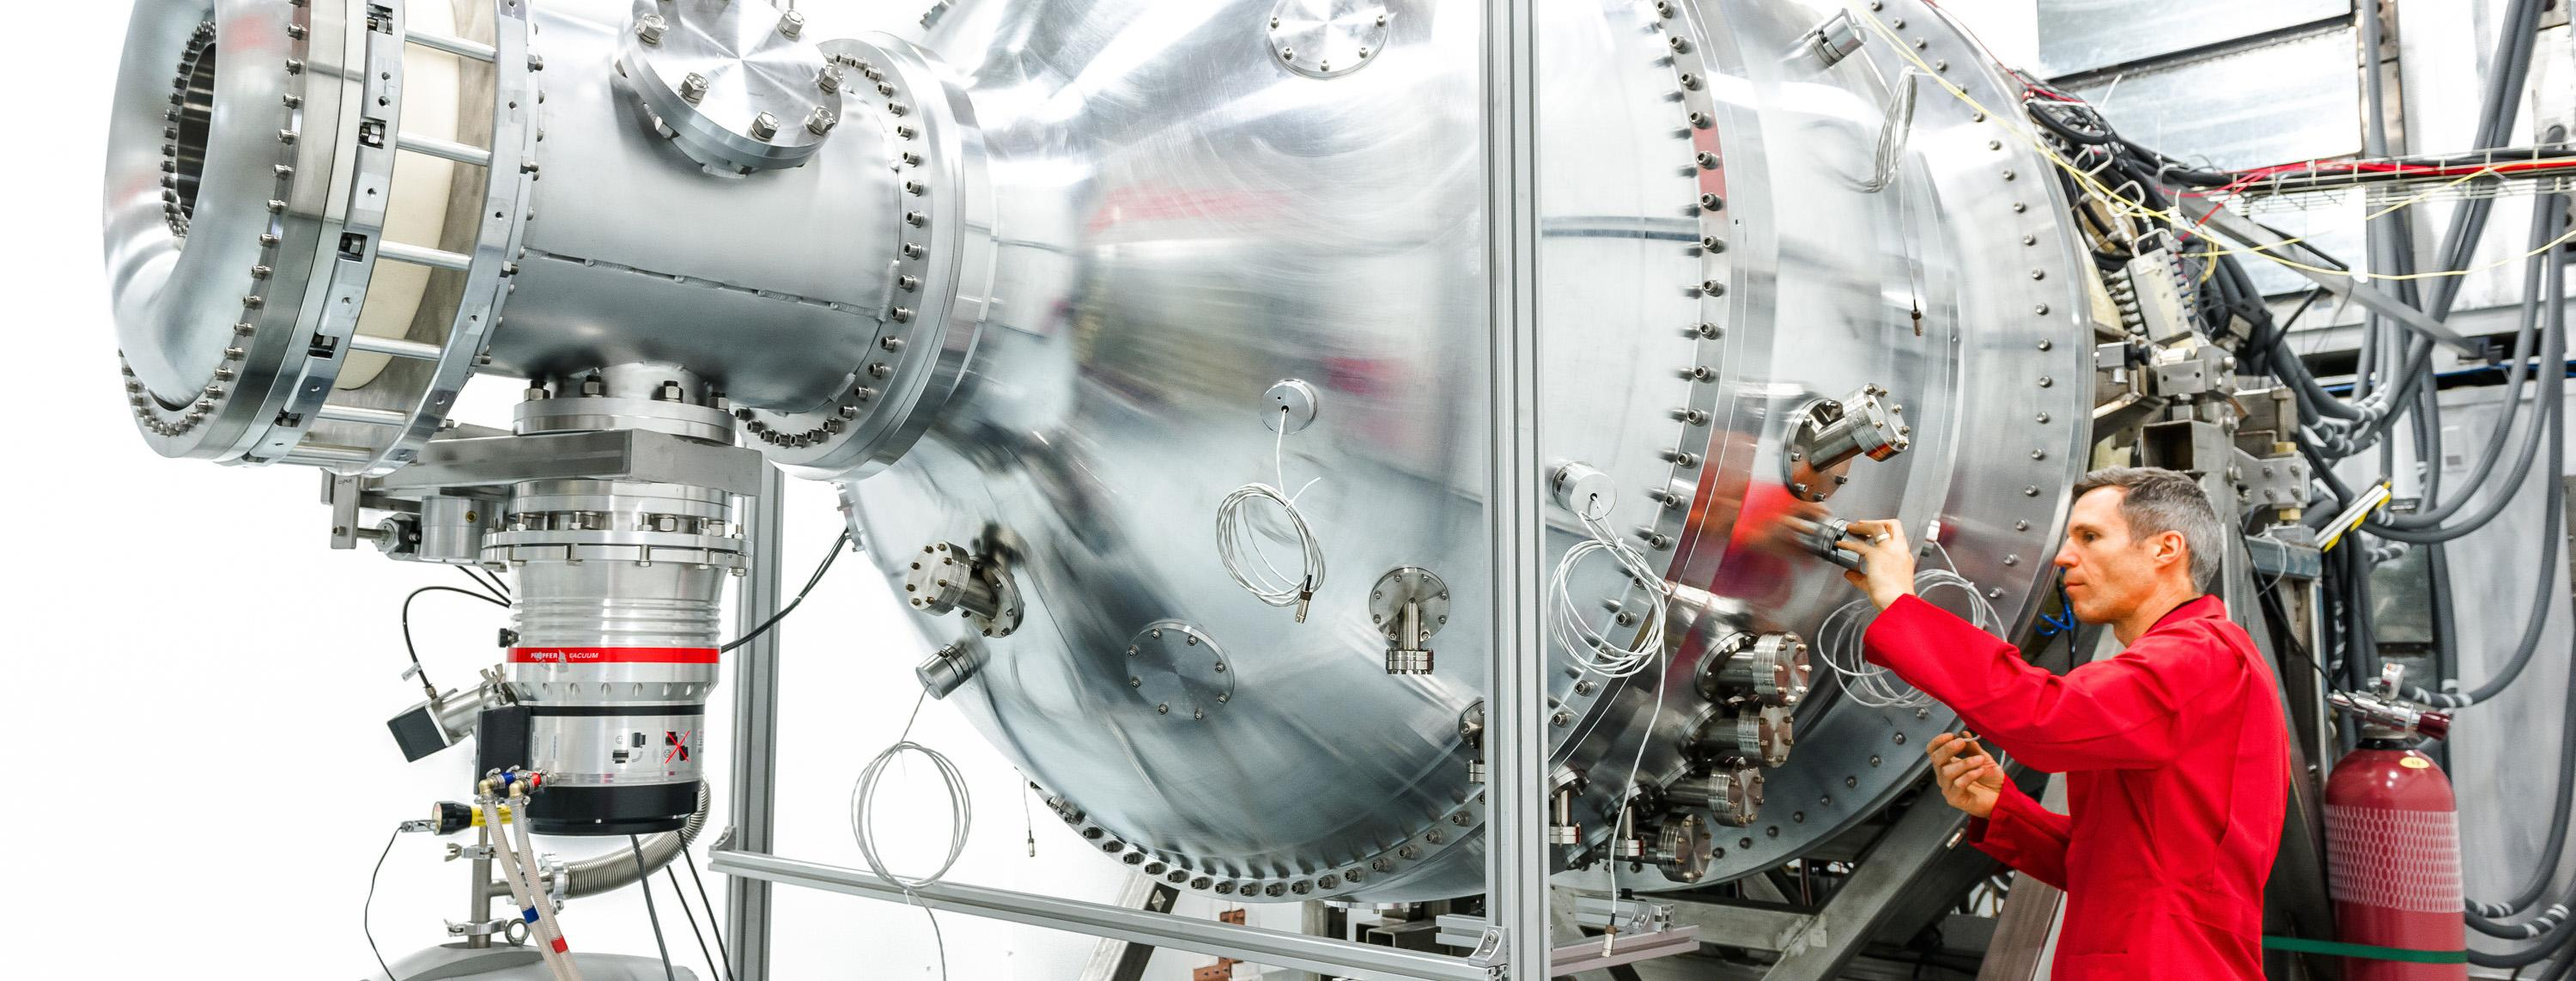 Nuclear fusion reactor prototype